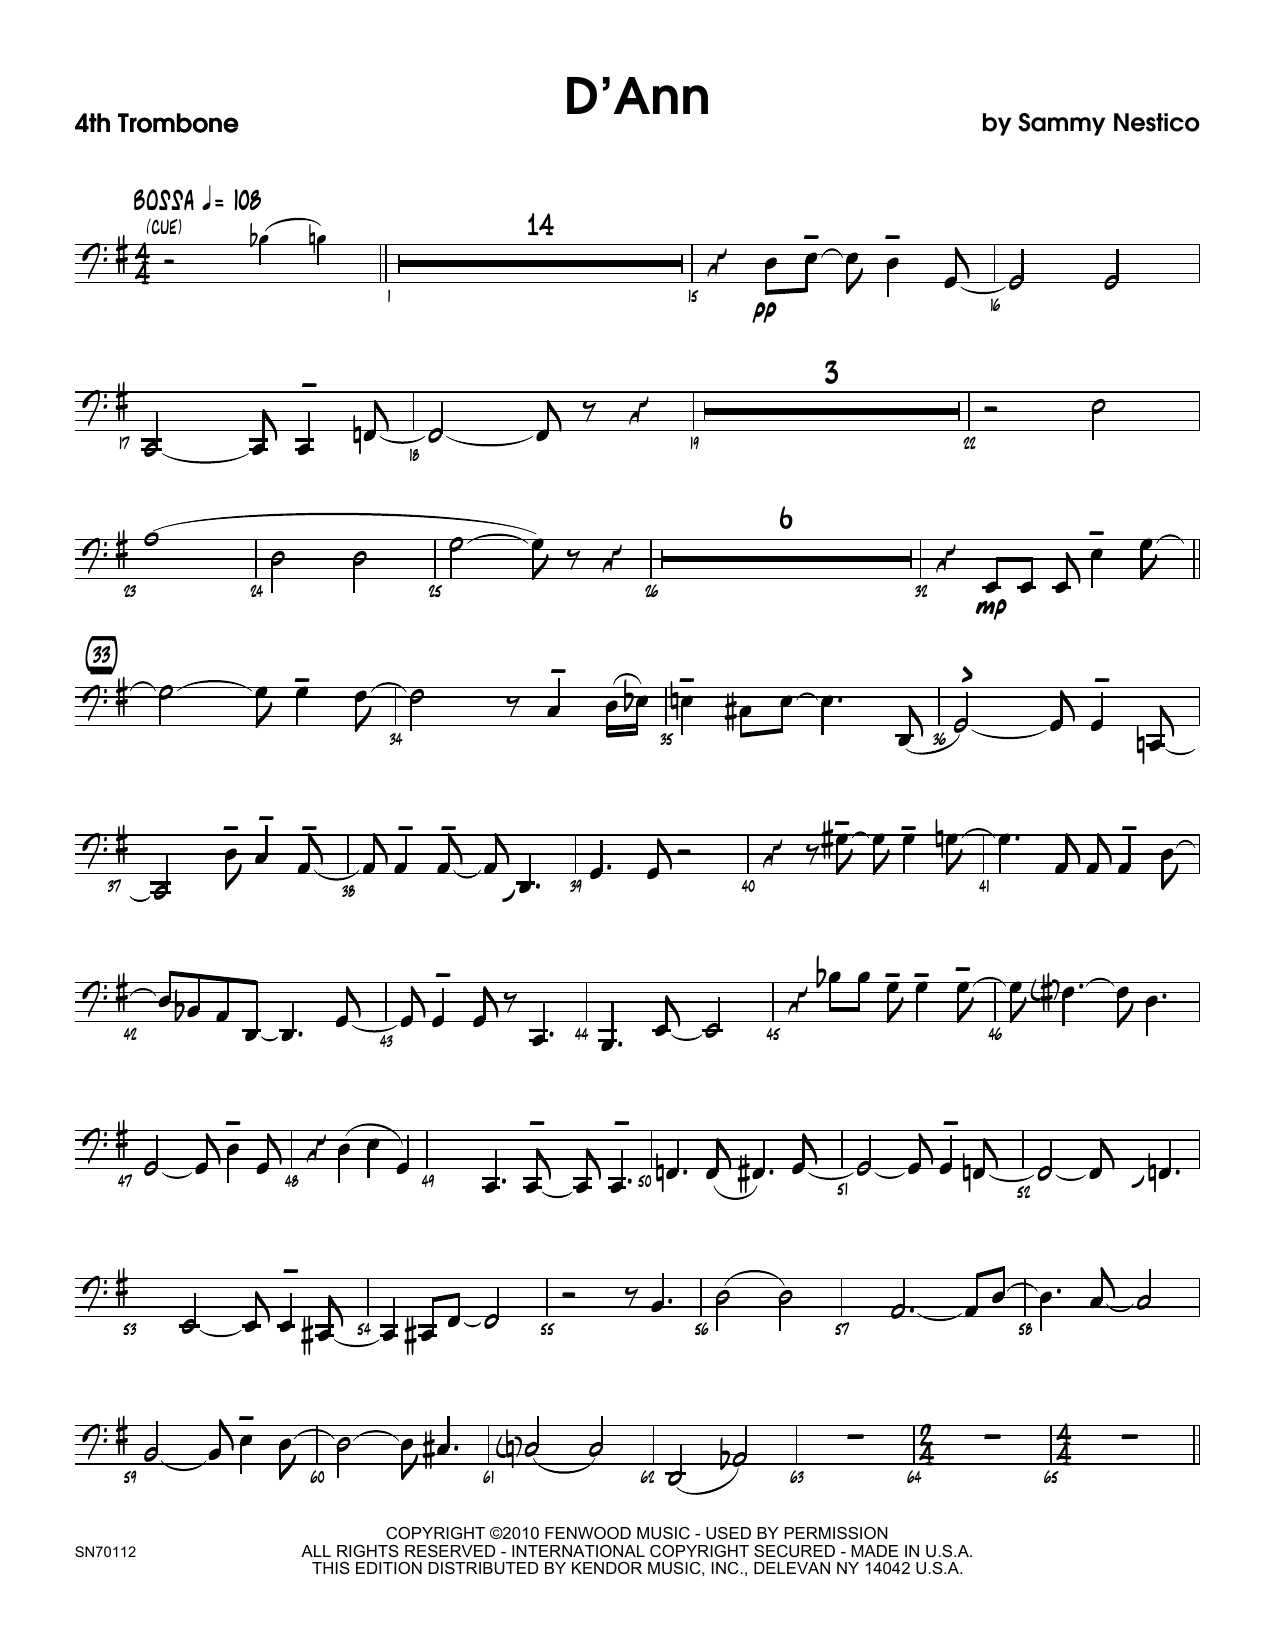 D'Ann - 4th Trombone Sheet Music